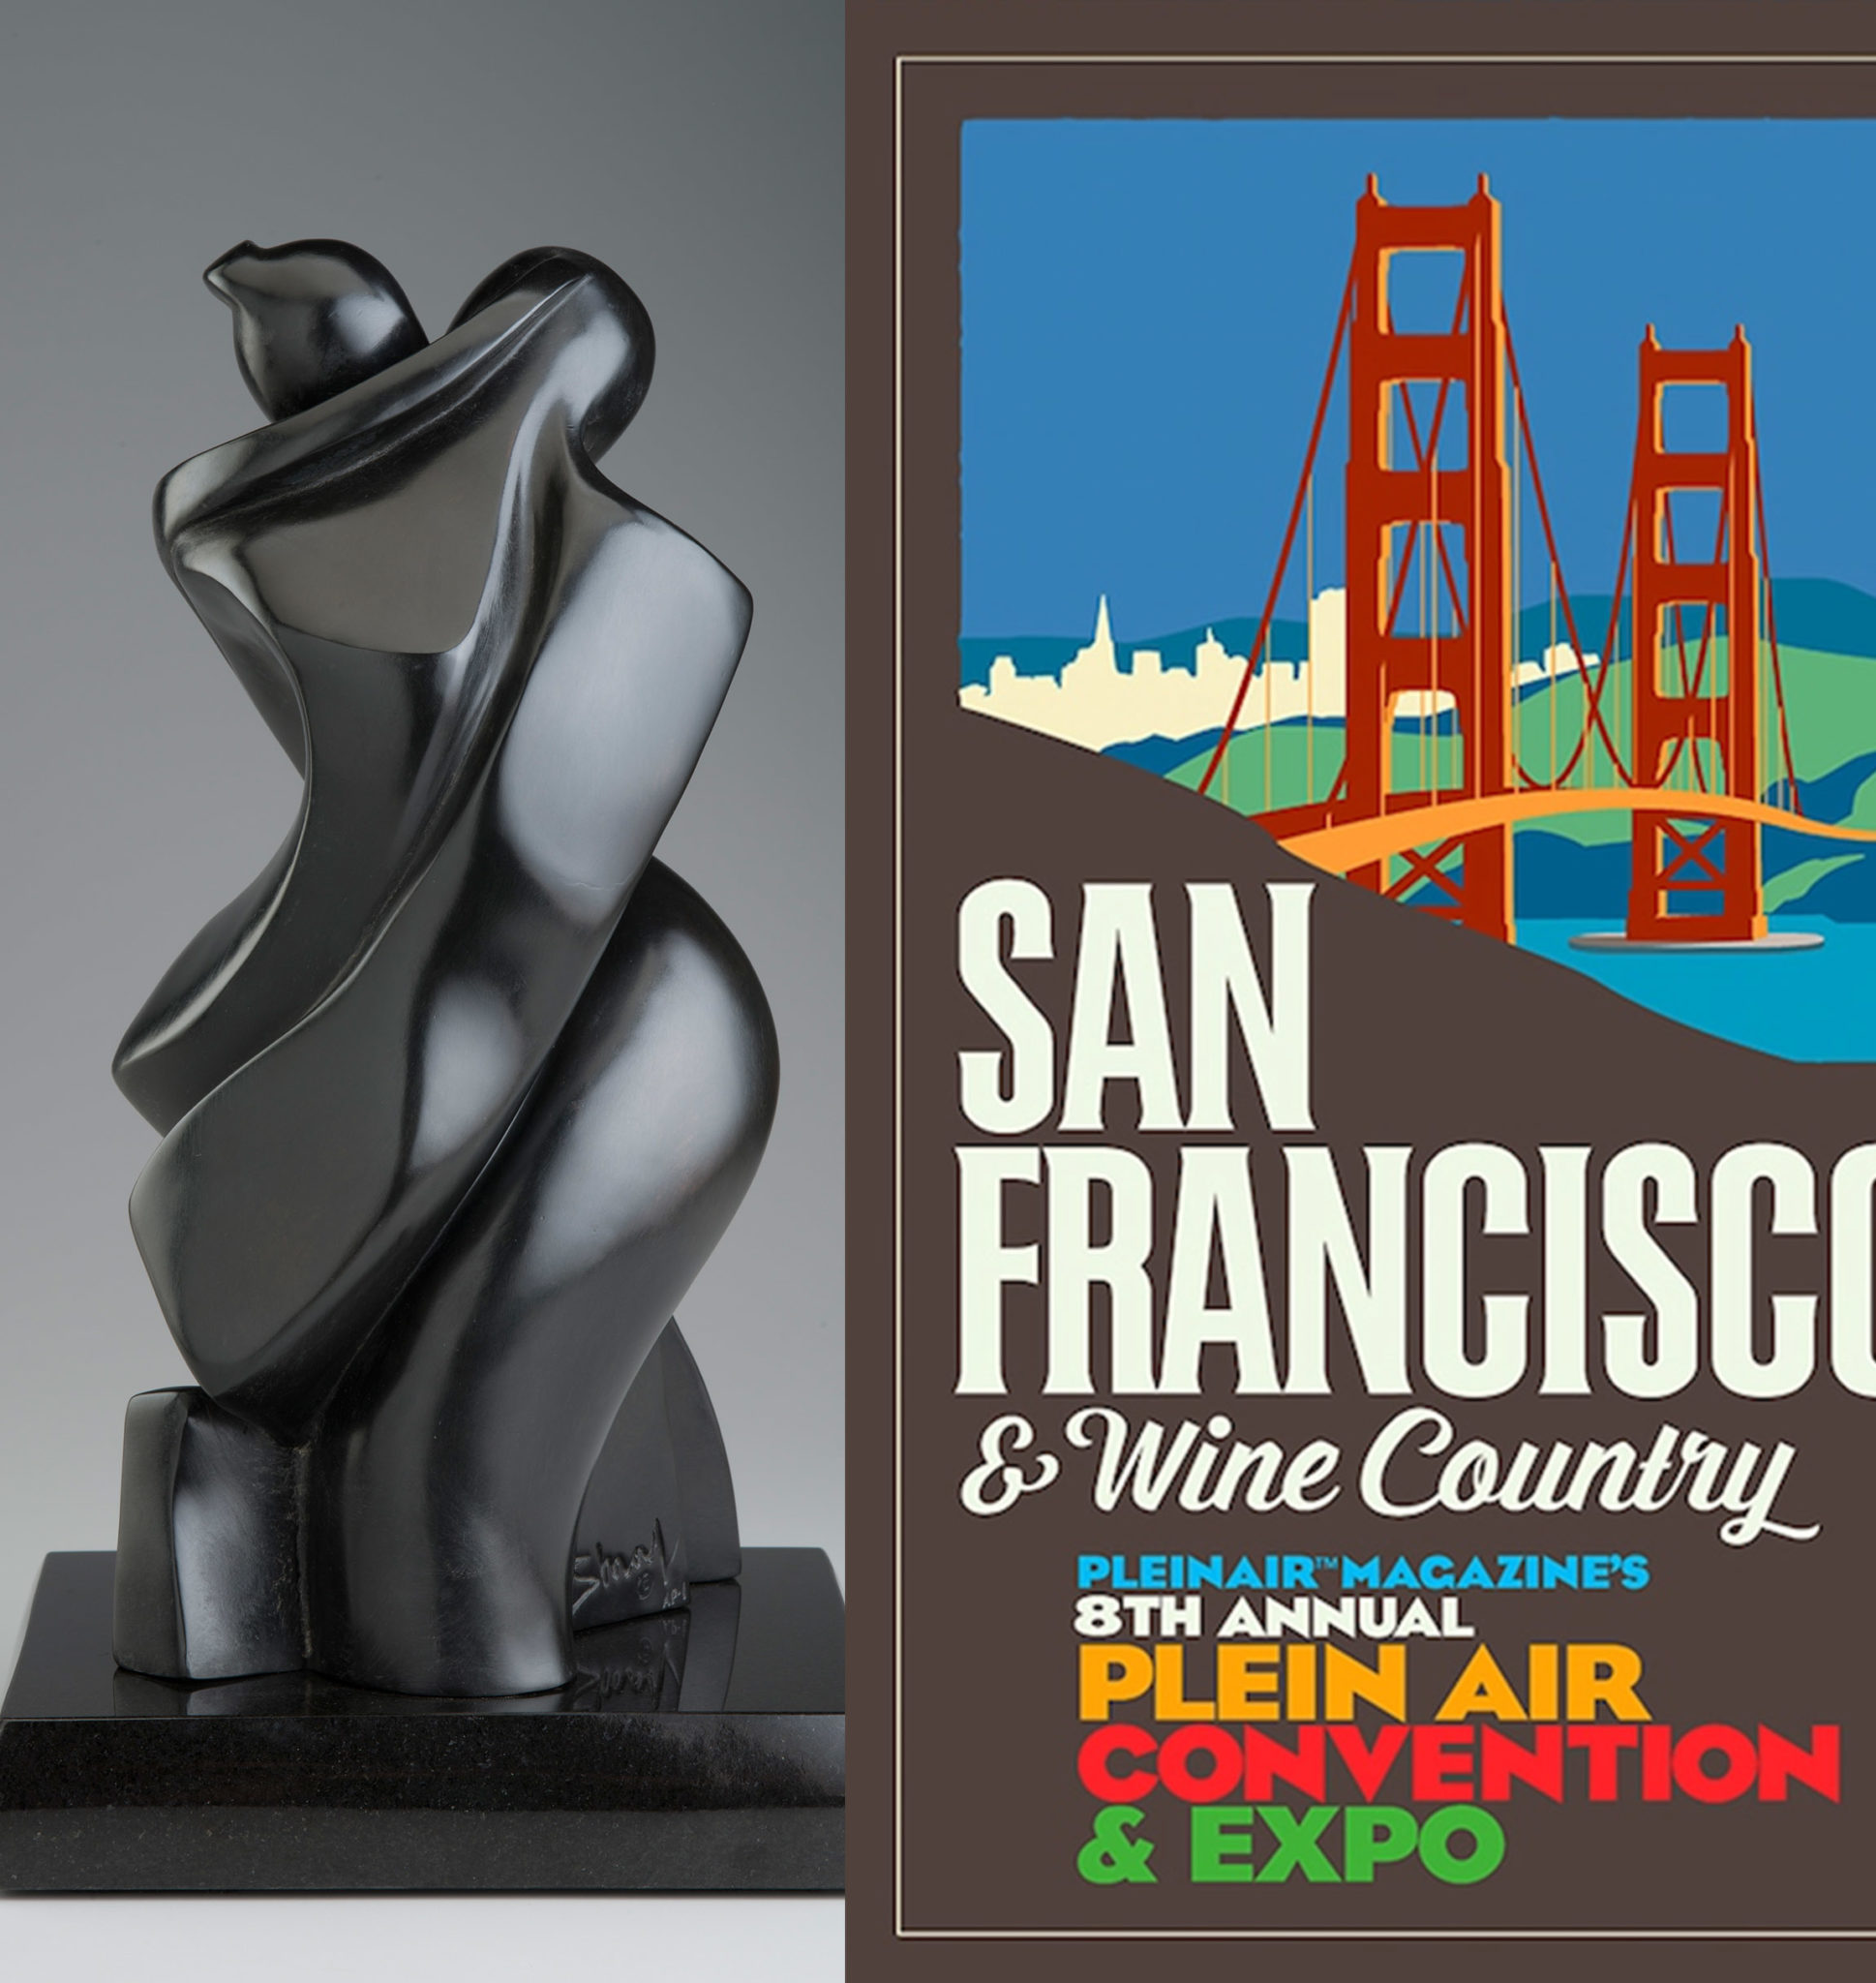 Shray @ Plein Air Convention & Expo (PACE), San Francisco, April 24 - 28,  2019 | Emillions Art